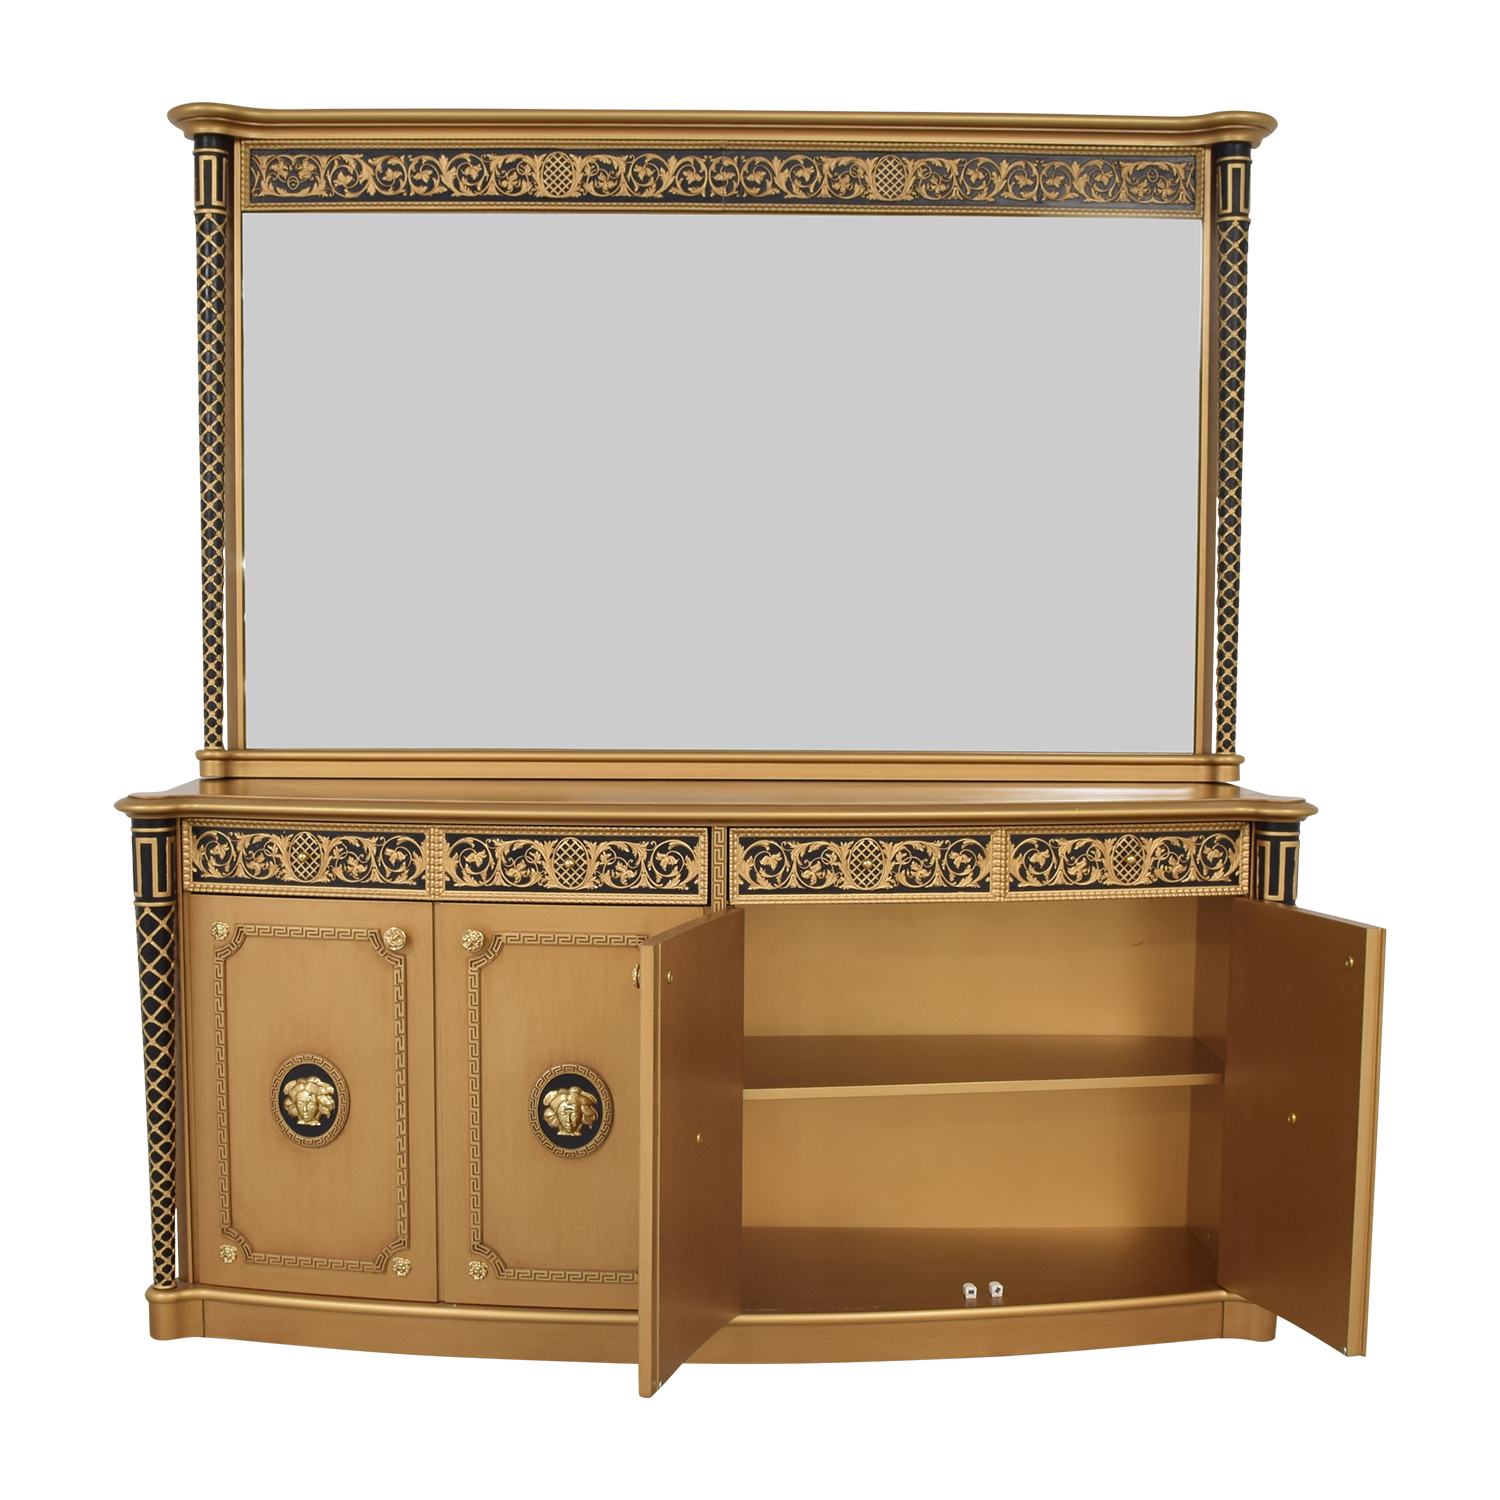 buy Versace Console Dresser with Mirror Versace Cabinets & Sideboards